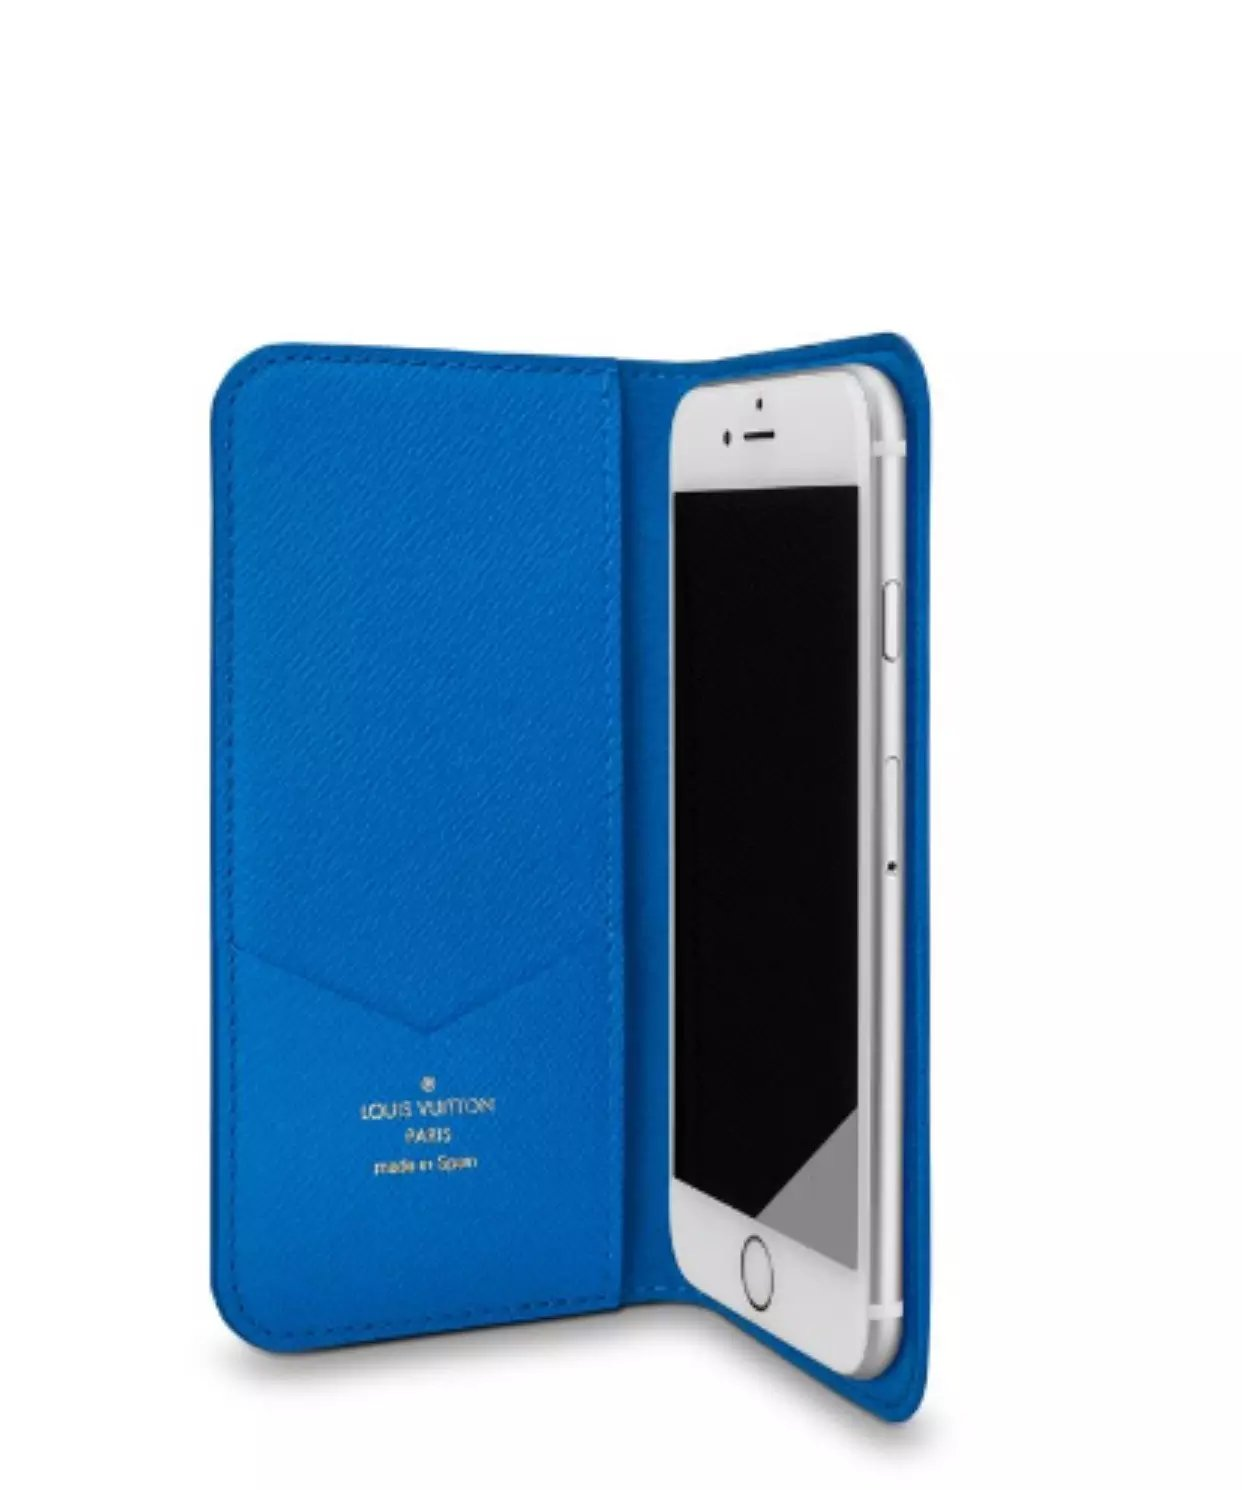 designer iphone hüllen handy hülle iphone Louis Vuitton iphone 8 Plus hüllen gürteltasche iphone akku iphone 8 Plus iphone hüllen günstig iphone 8 Plus over holz handy hülle für iphone 8 Plus ipod schutzhülle